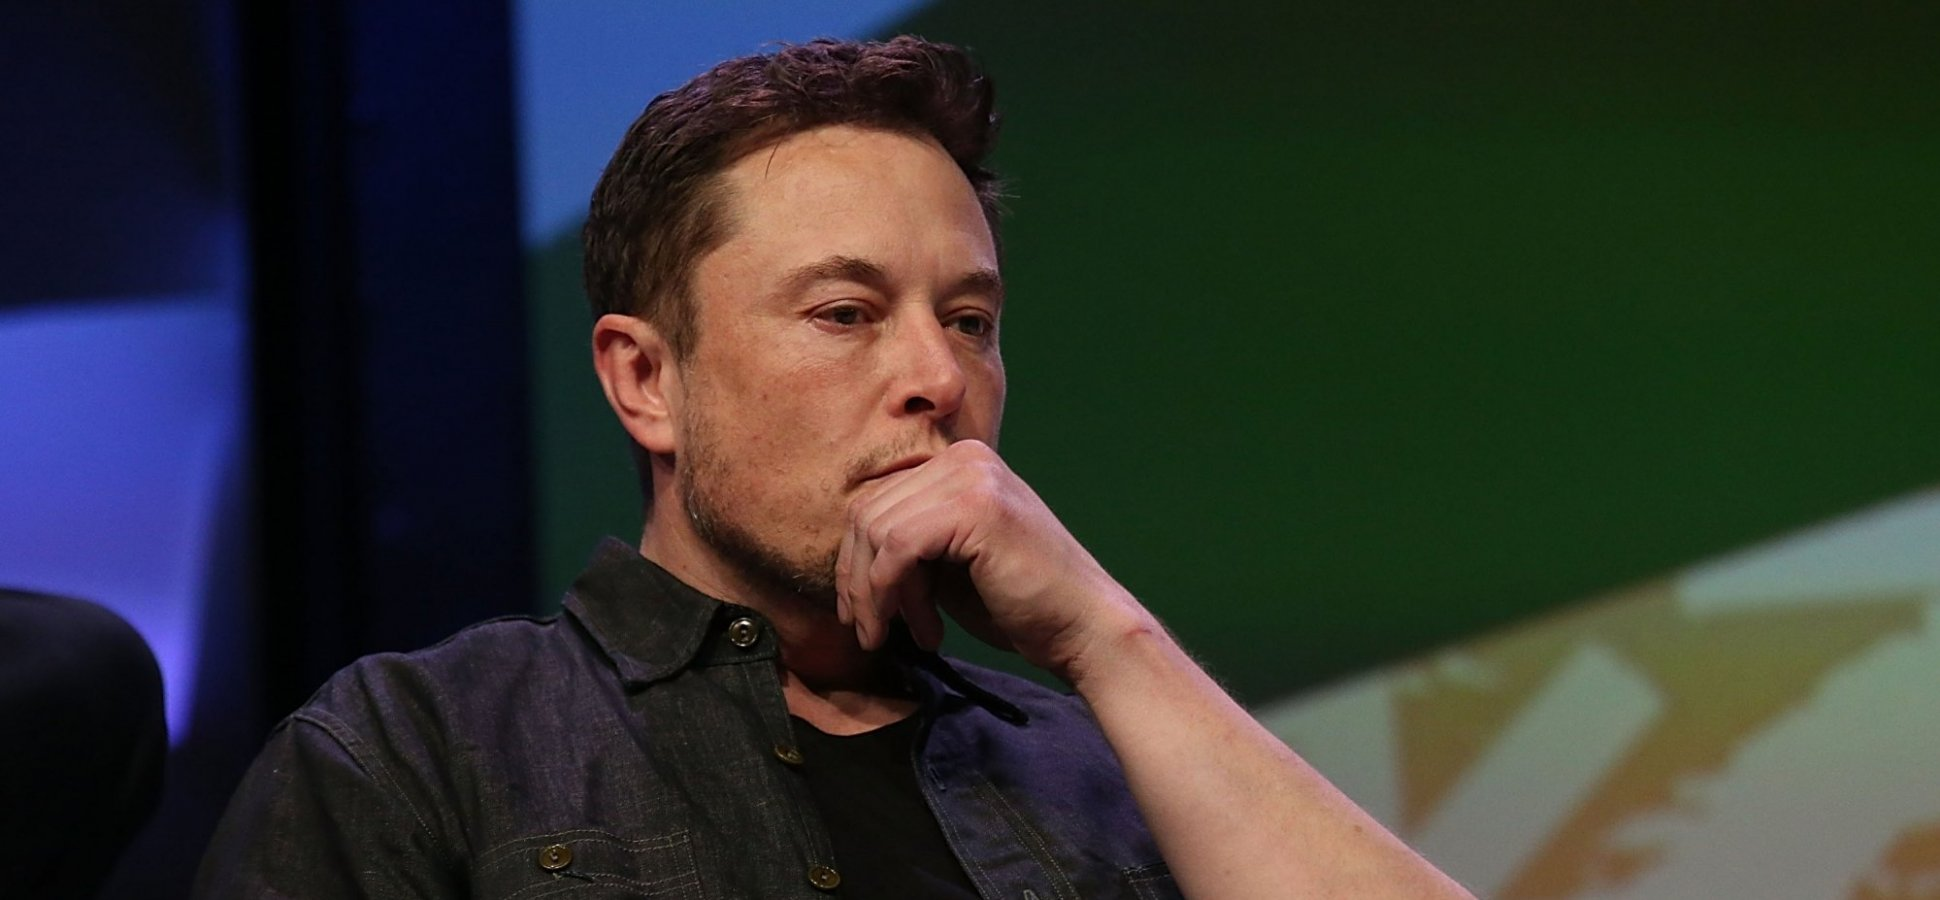 Elon Musk Lashes Out at Thai Cave Diver and Ruins the Goodwill He Could Have Had